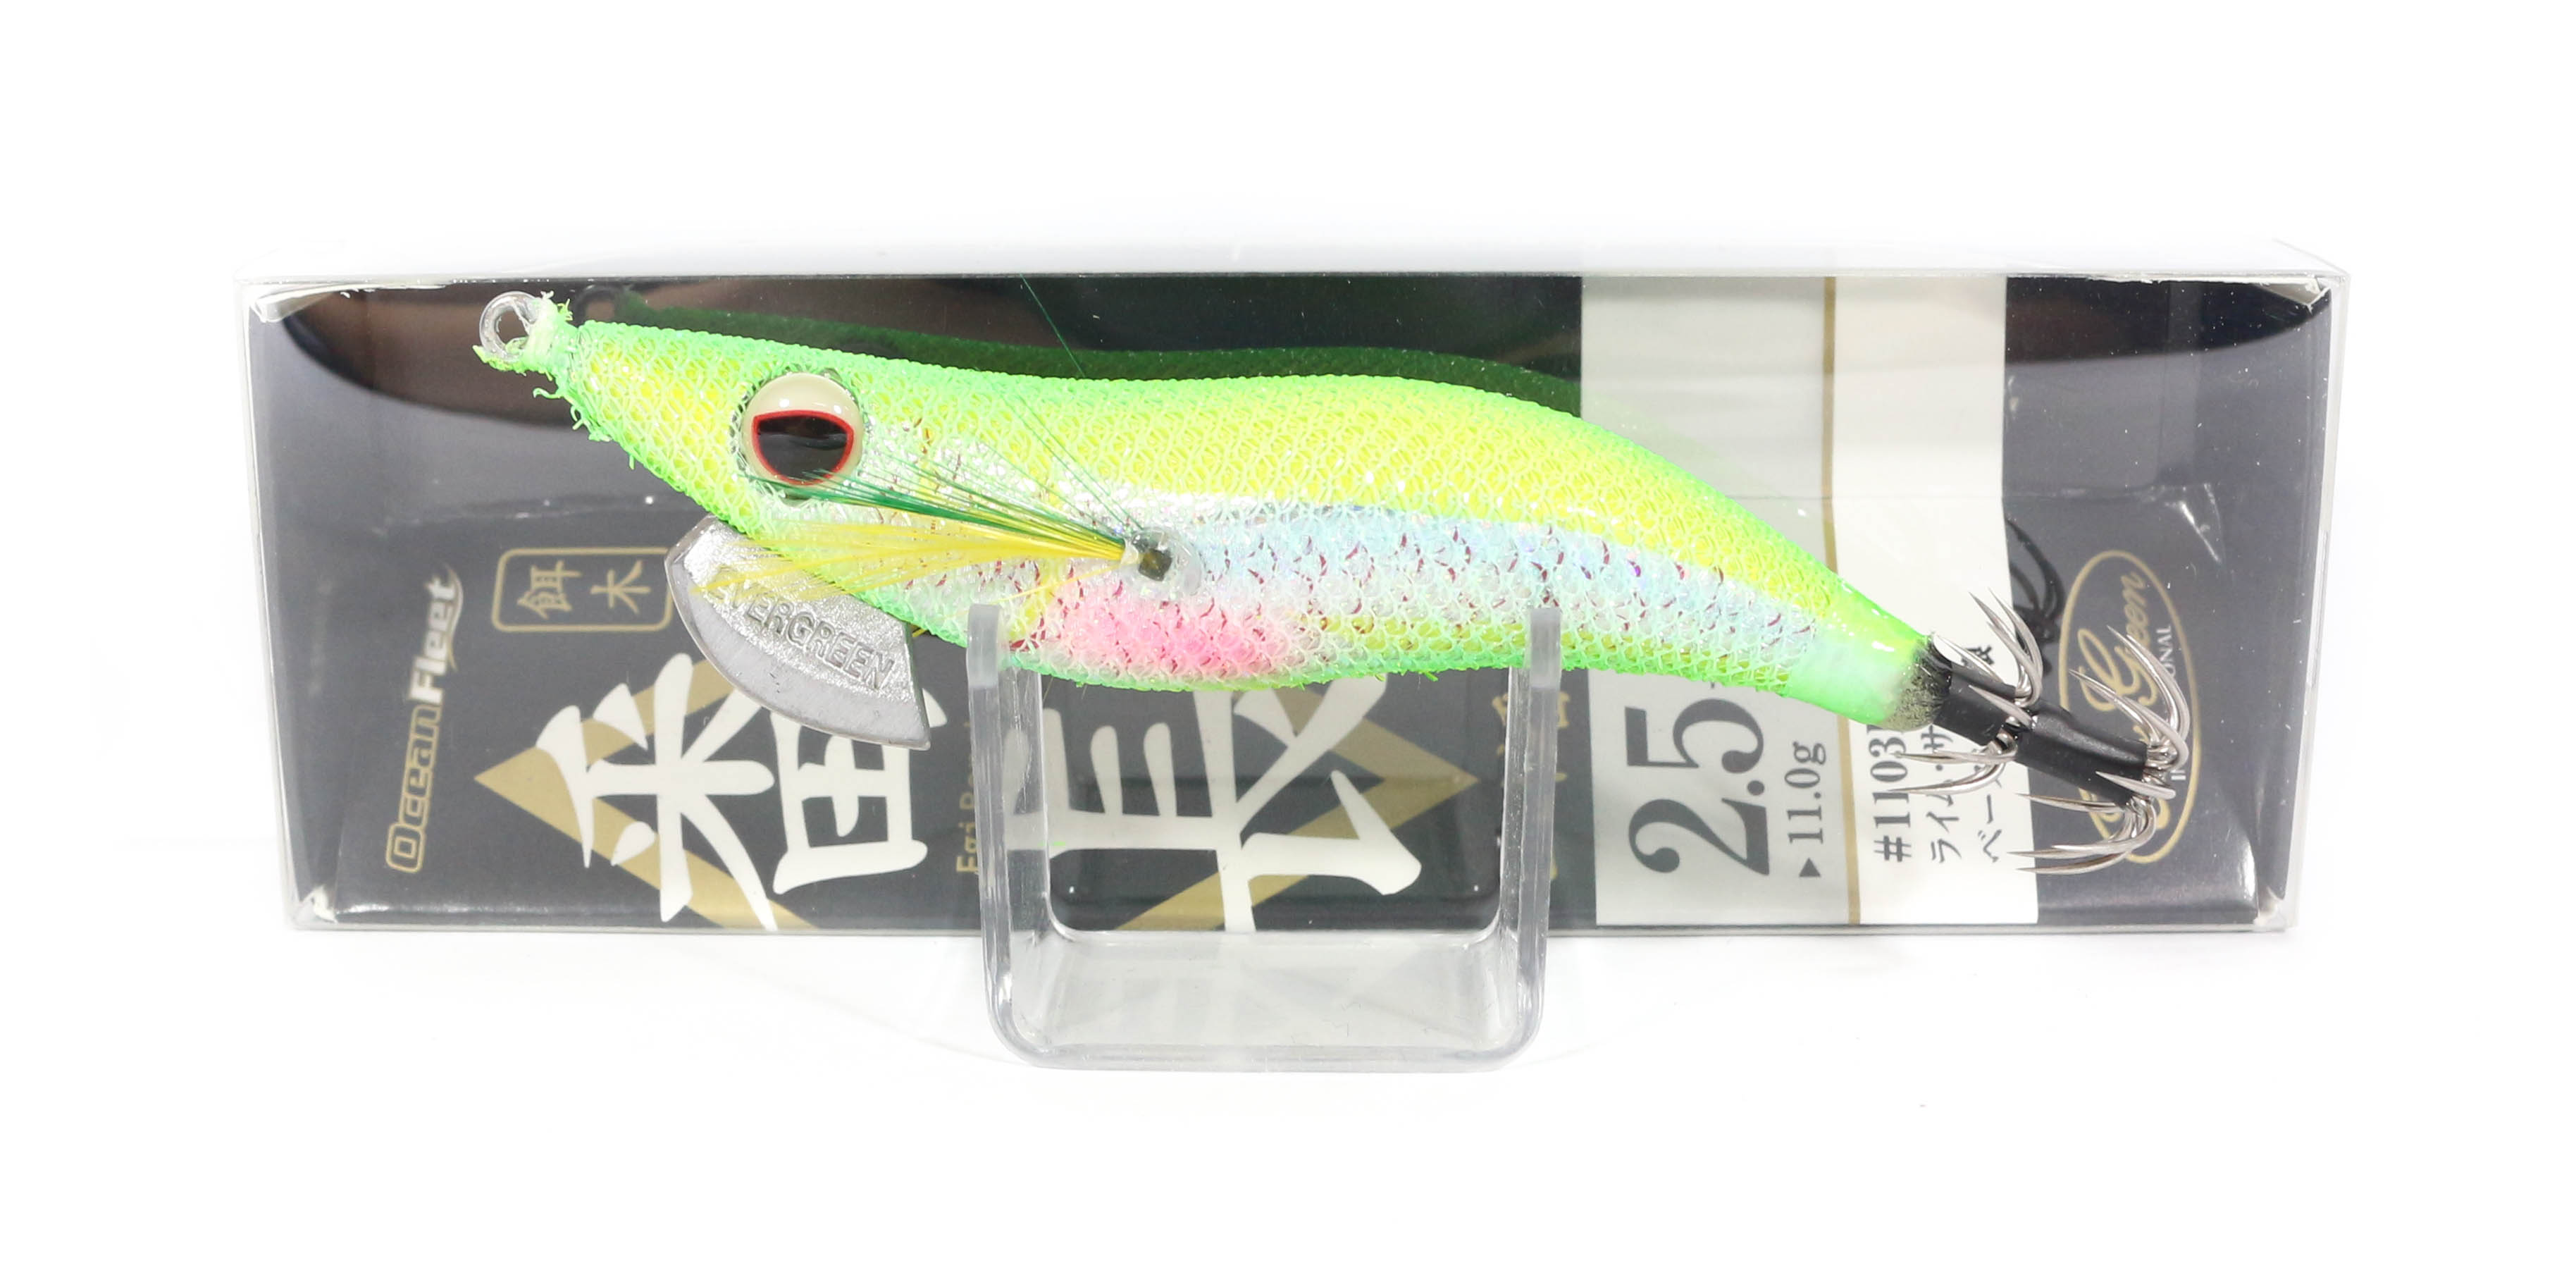 Evergreen Ocean Fleet Custom Squid Jig Lure 2.5 1103HS (7188)